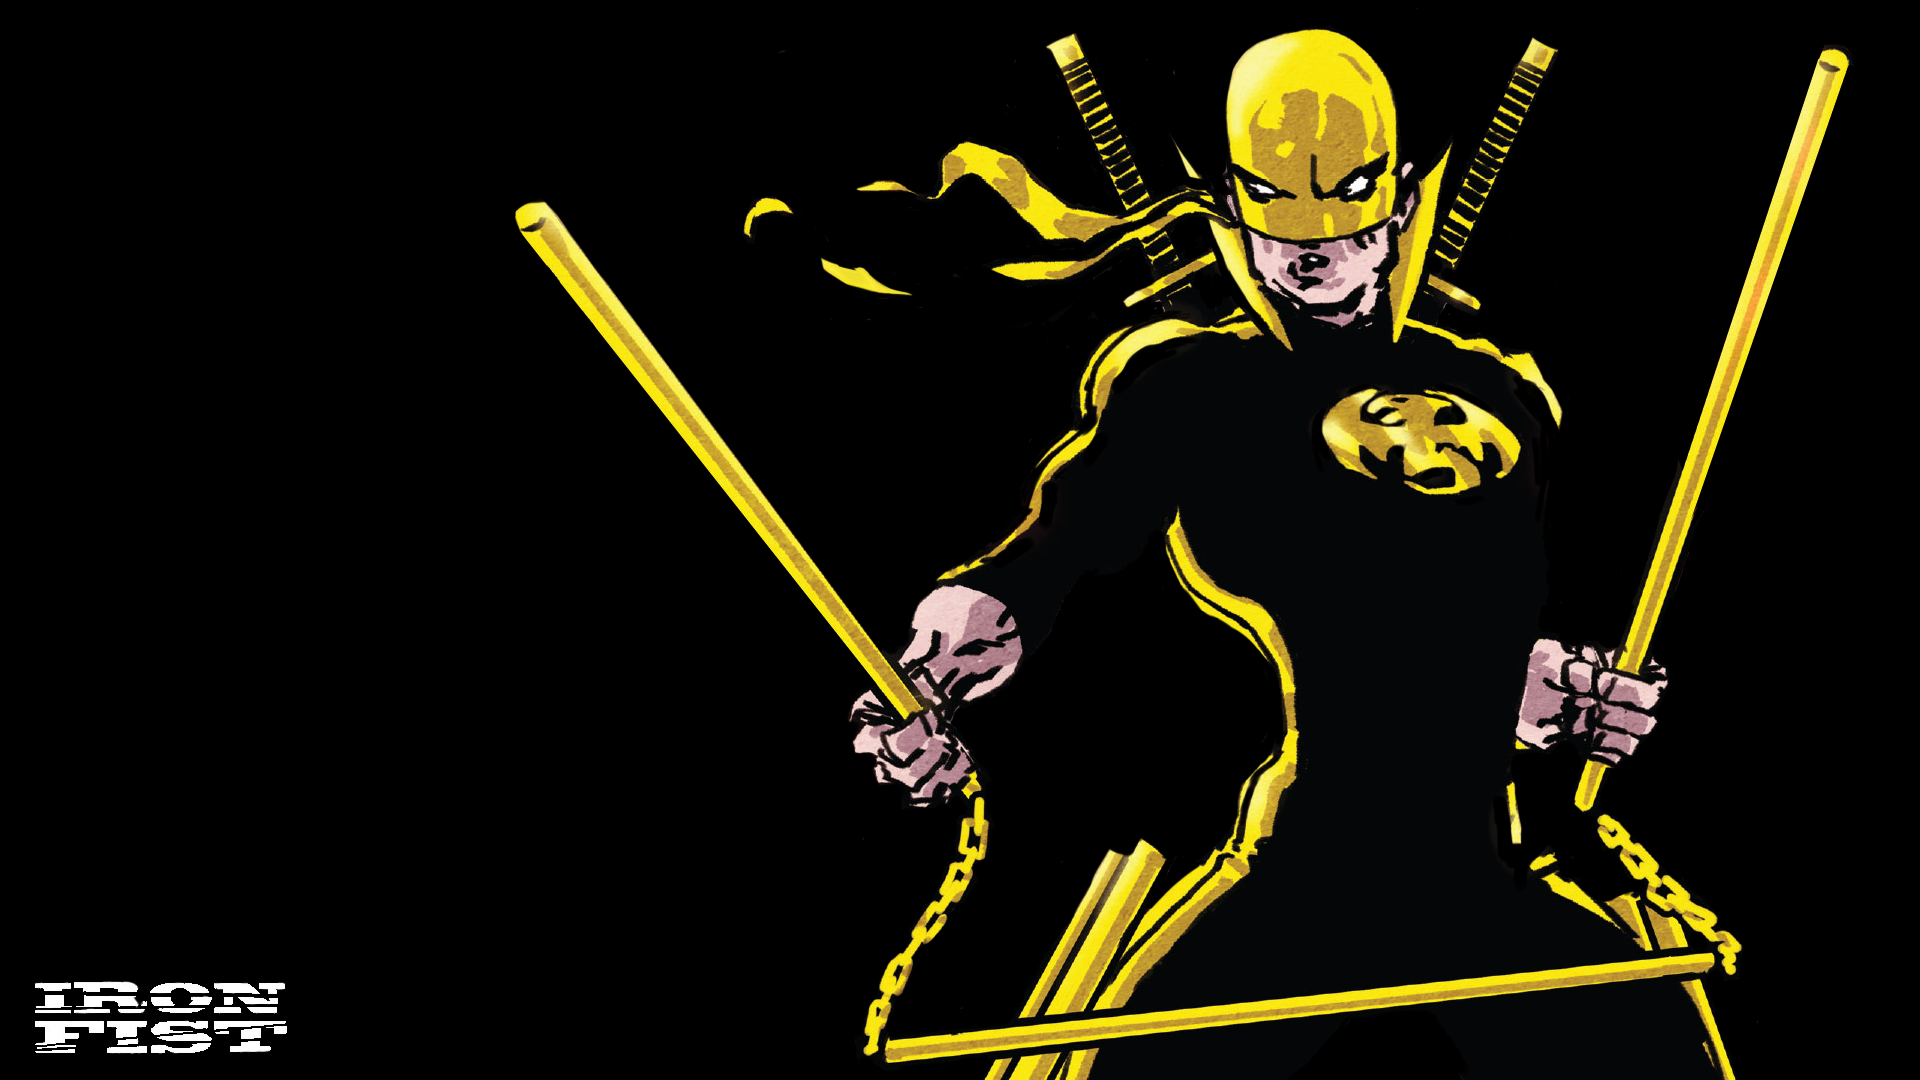 Spider Man Marvel Comics Iron Fist Wallpapers Hd Desktop And Iron Fist Marvel Iron Fist Silver Surfer